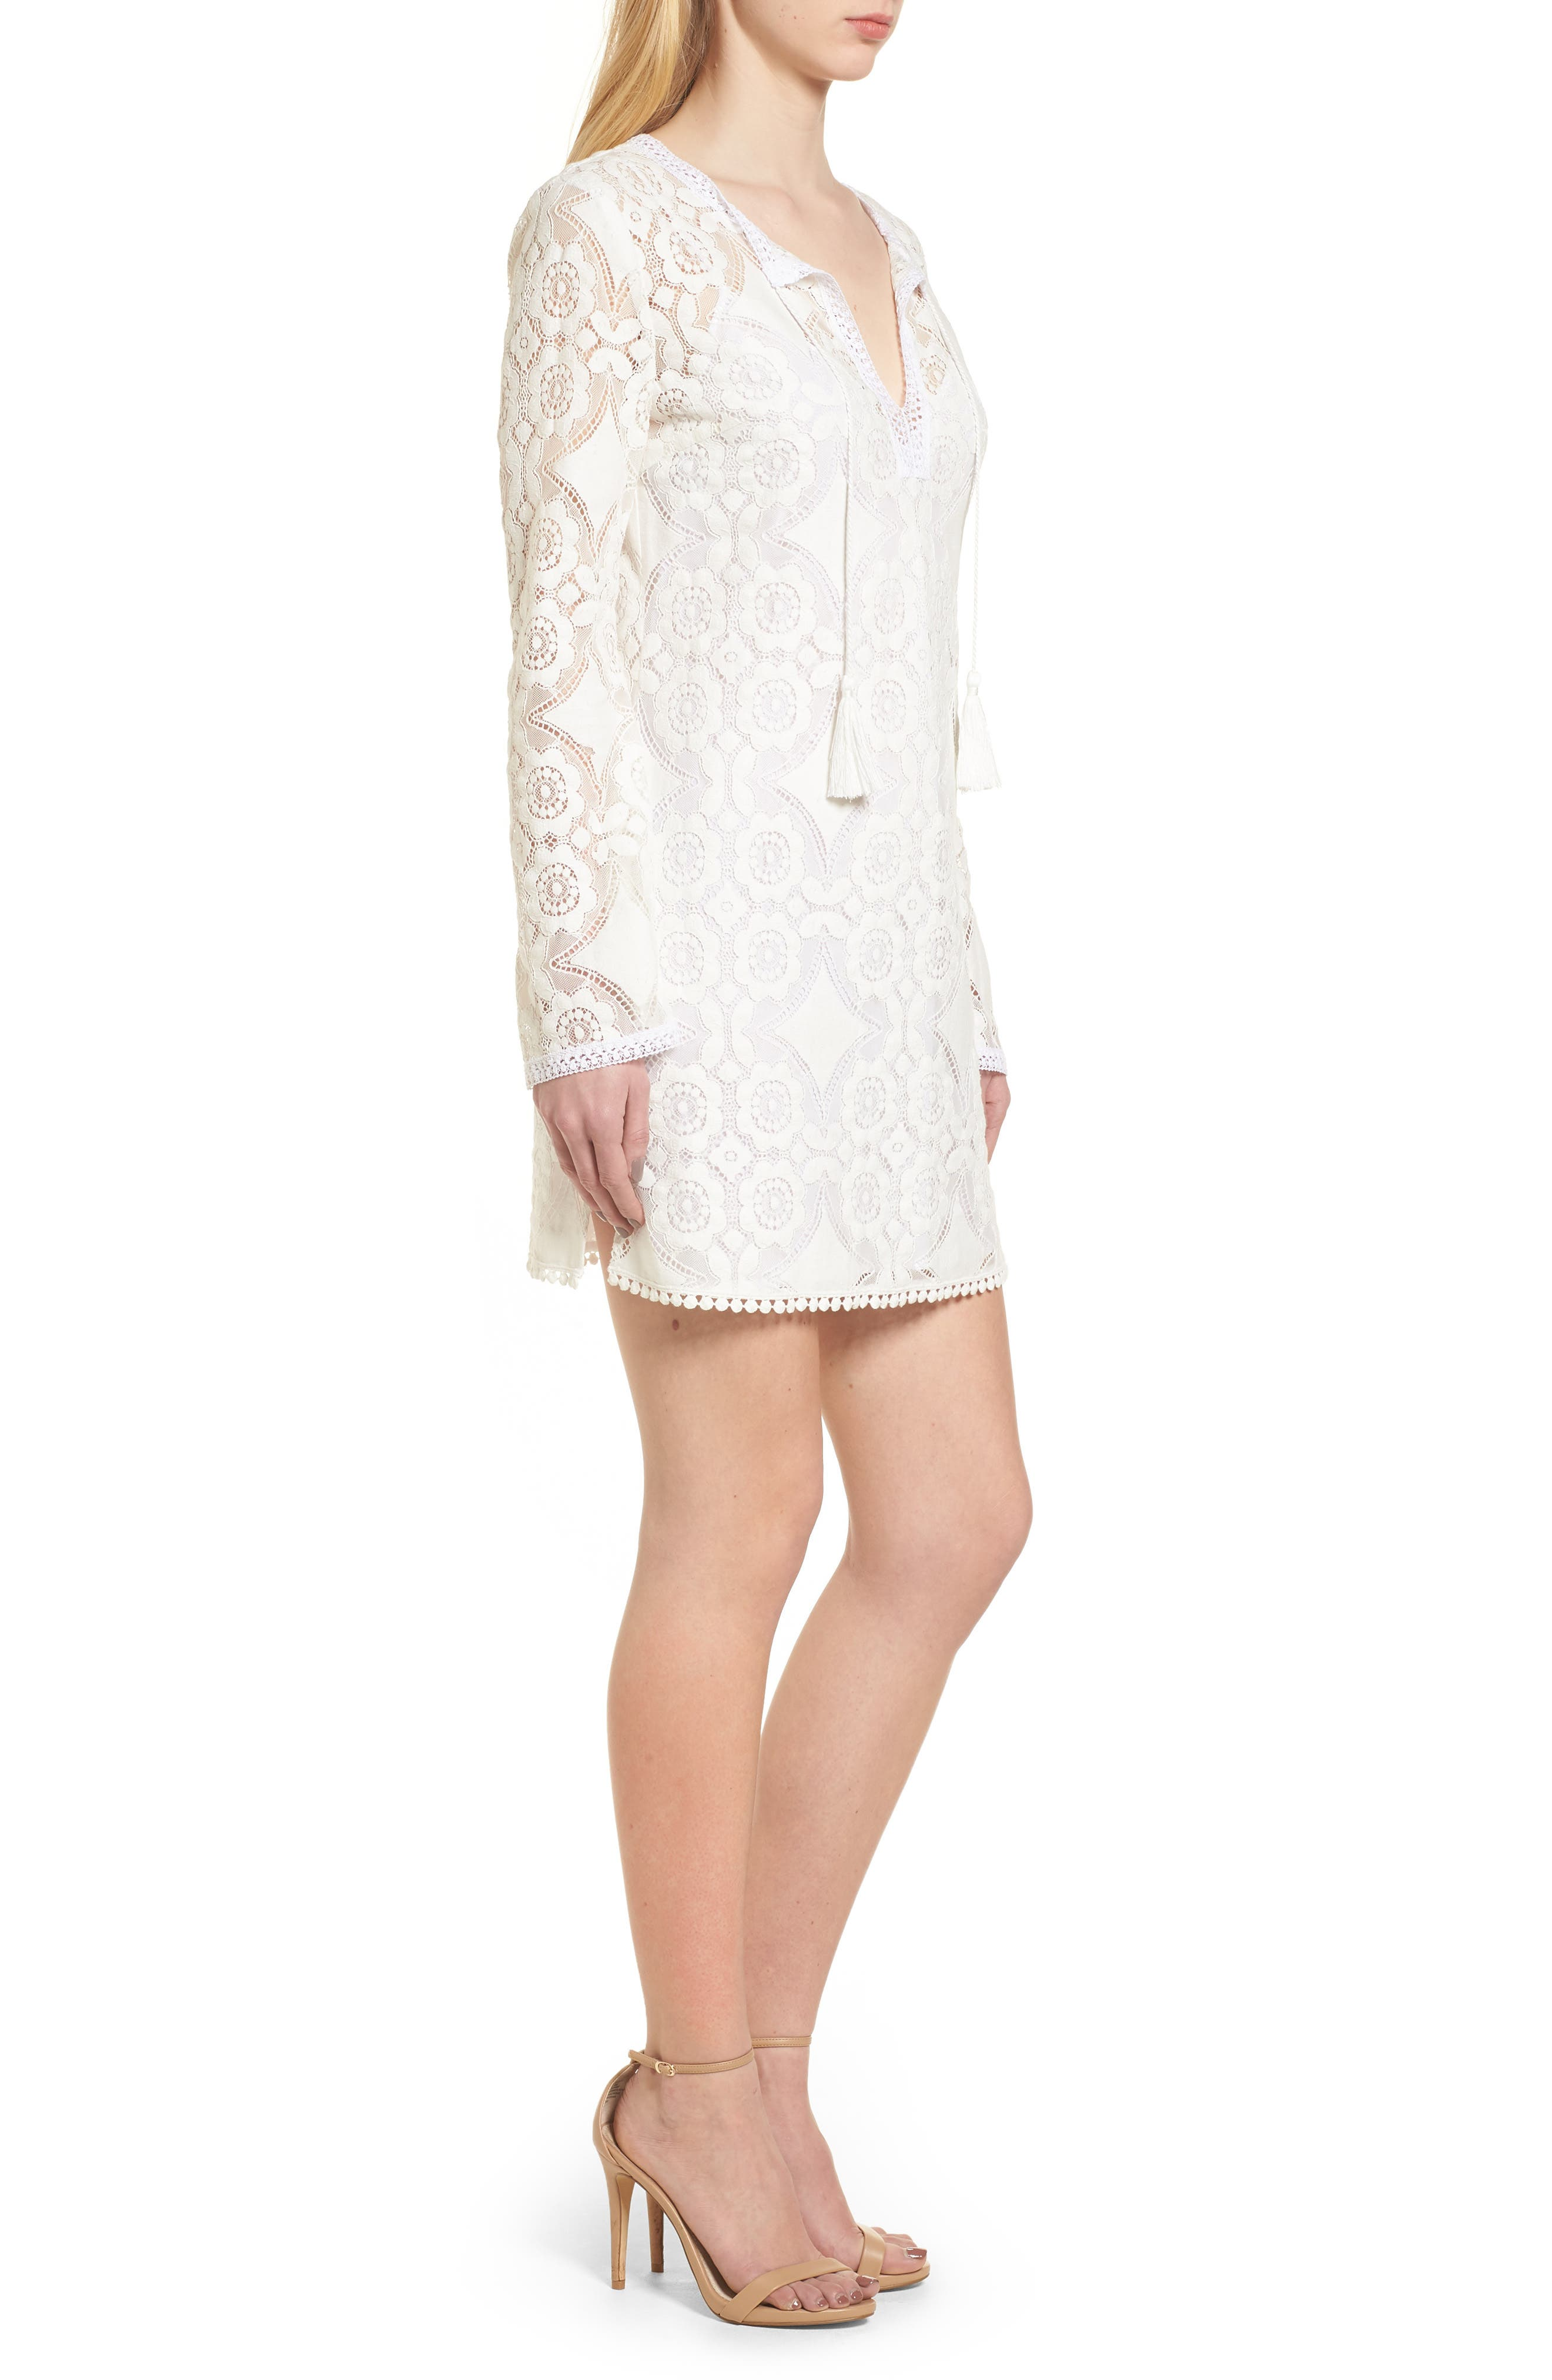 Spa Day Lace Sheath Dress,                             Alternate thumbnail 3, color,                             105